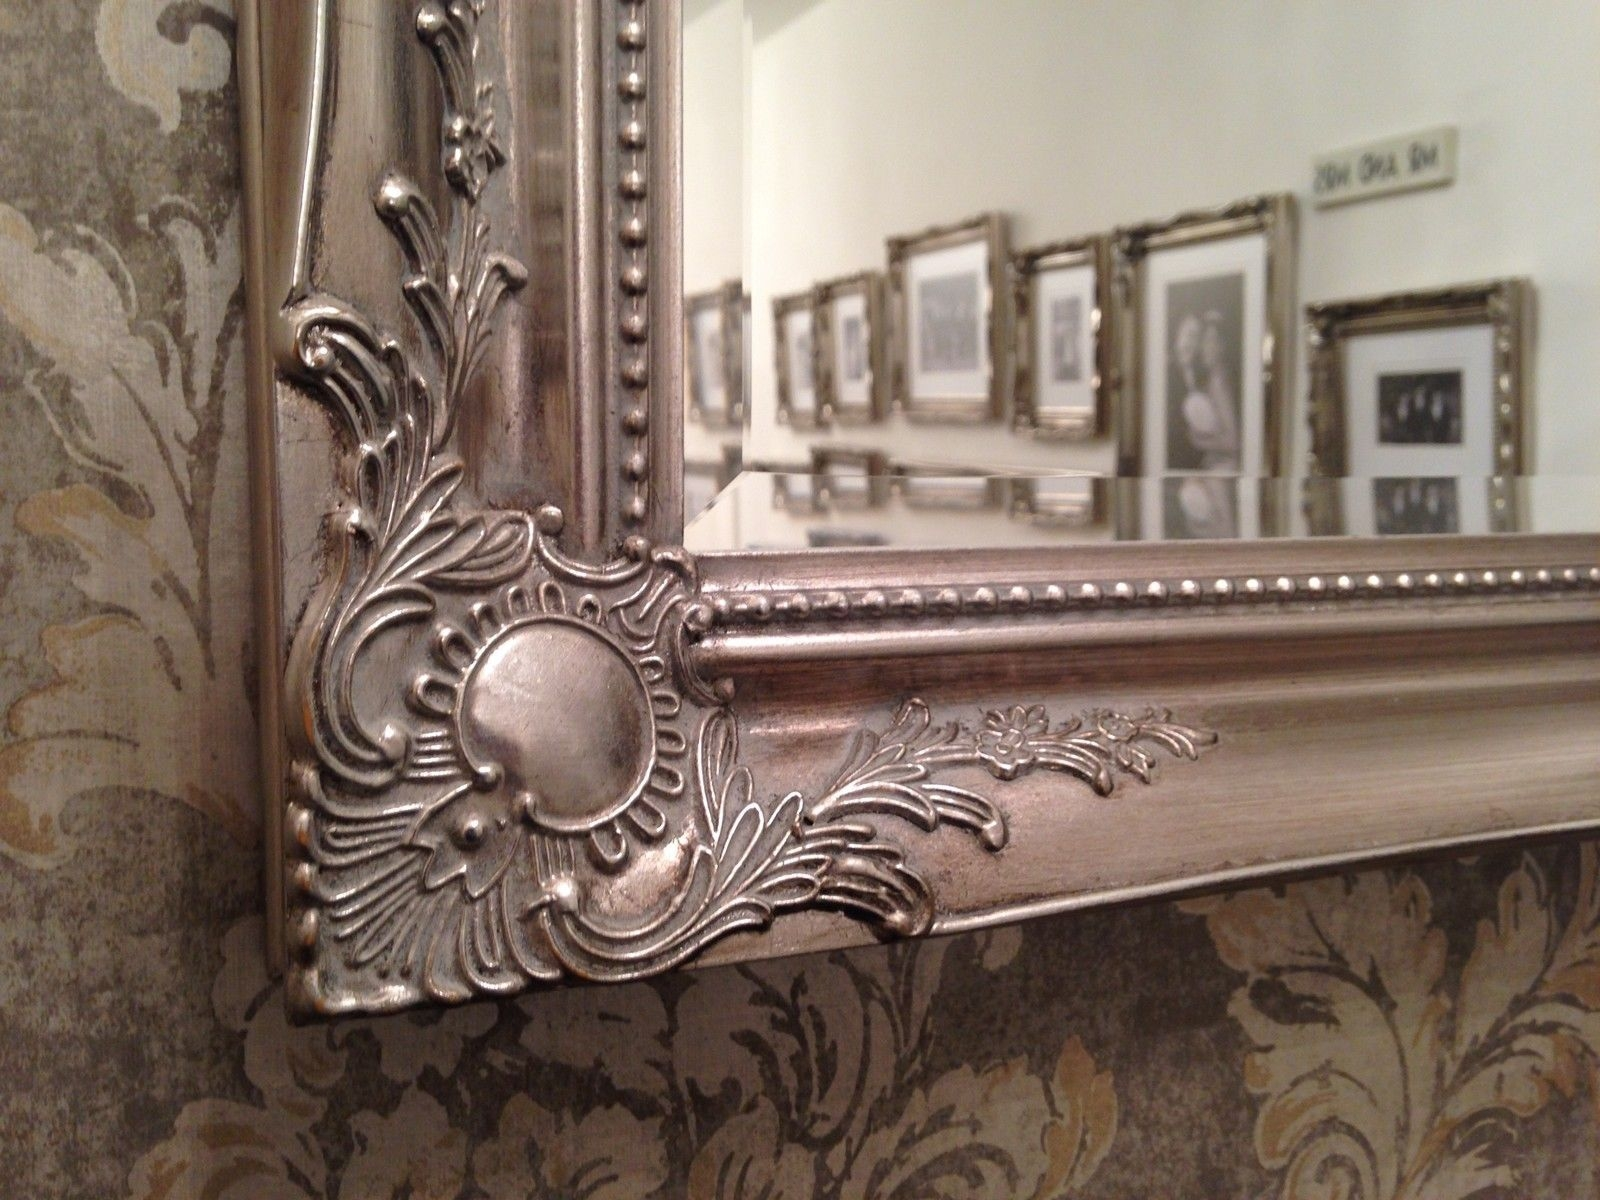 Antique Silver Shab Chic Ornate Decorative Over Mantle Wall Mirror Pertaining To Large Antique Silver Mirror (Image 2 of 15)